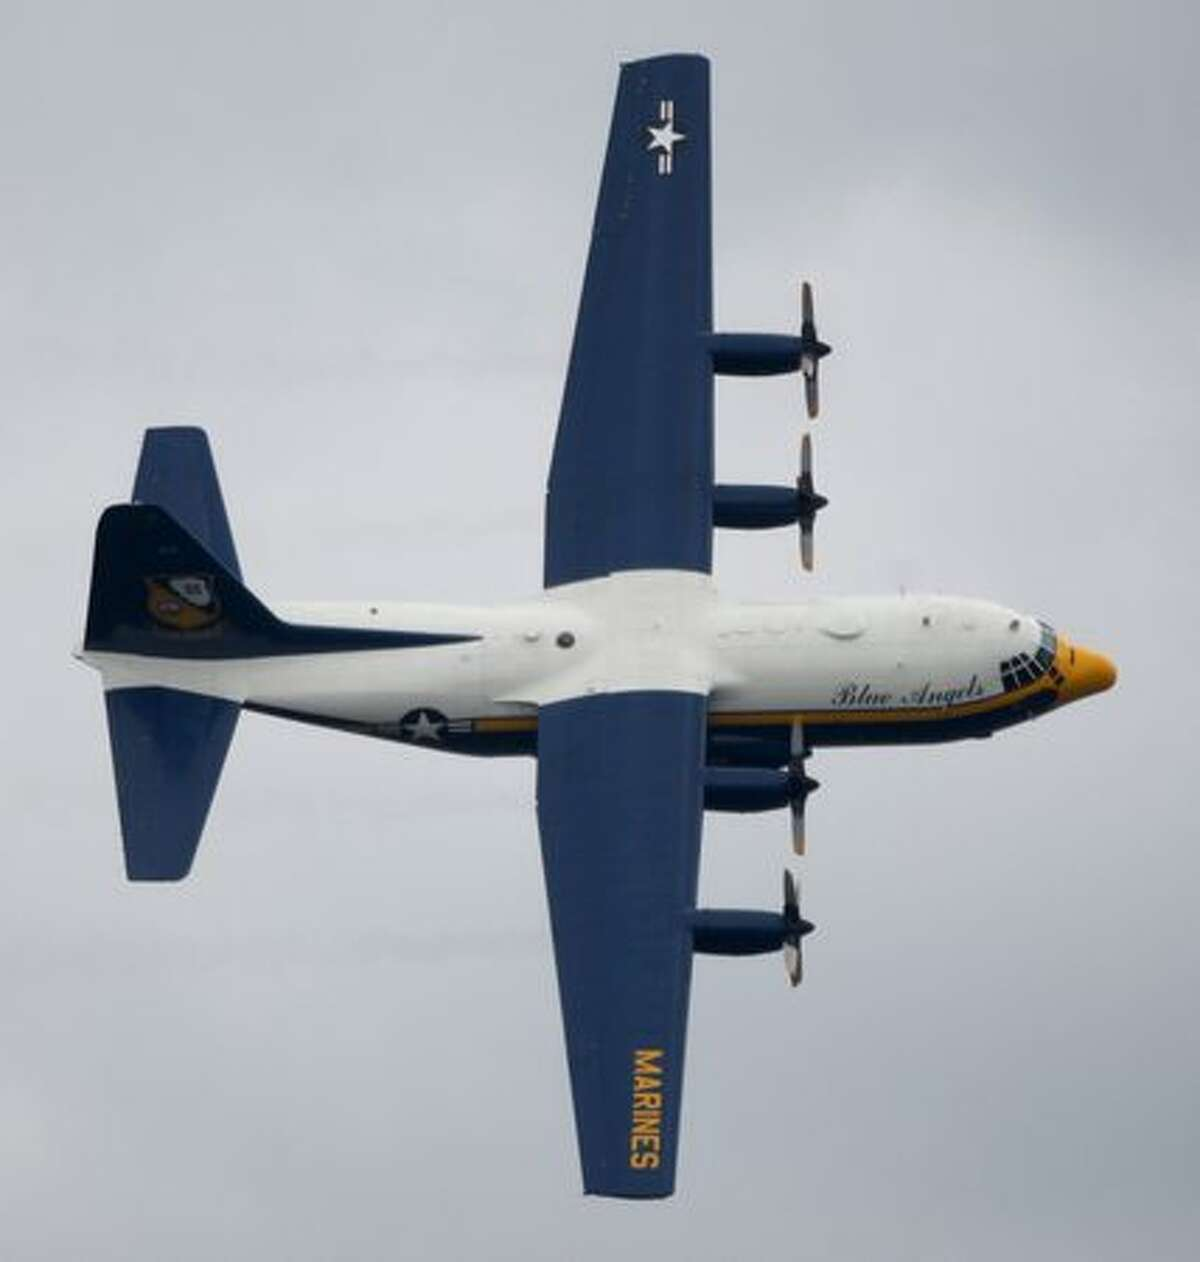 The US Navy Blue Angels' Fat Albert performs during the air show.